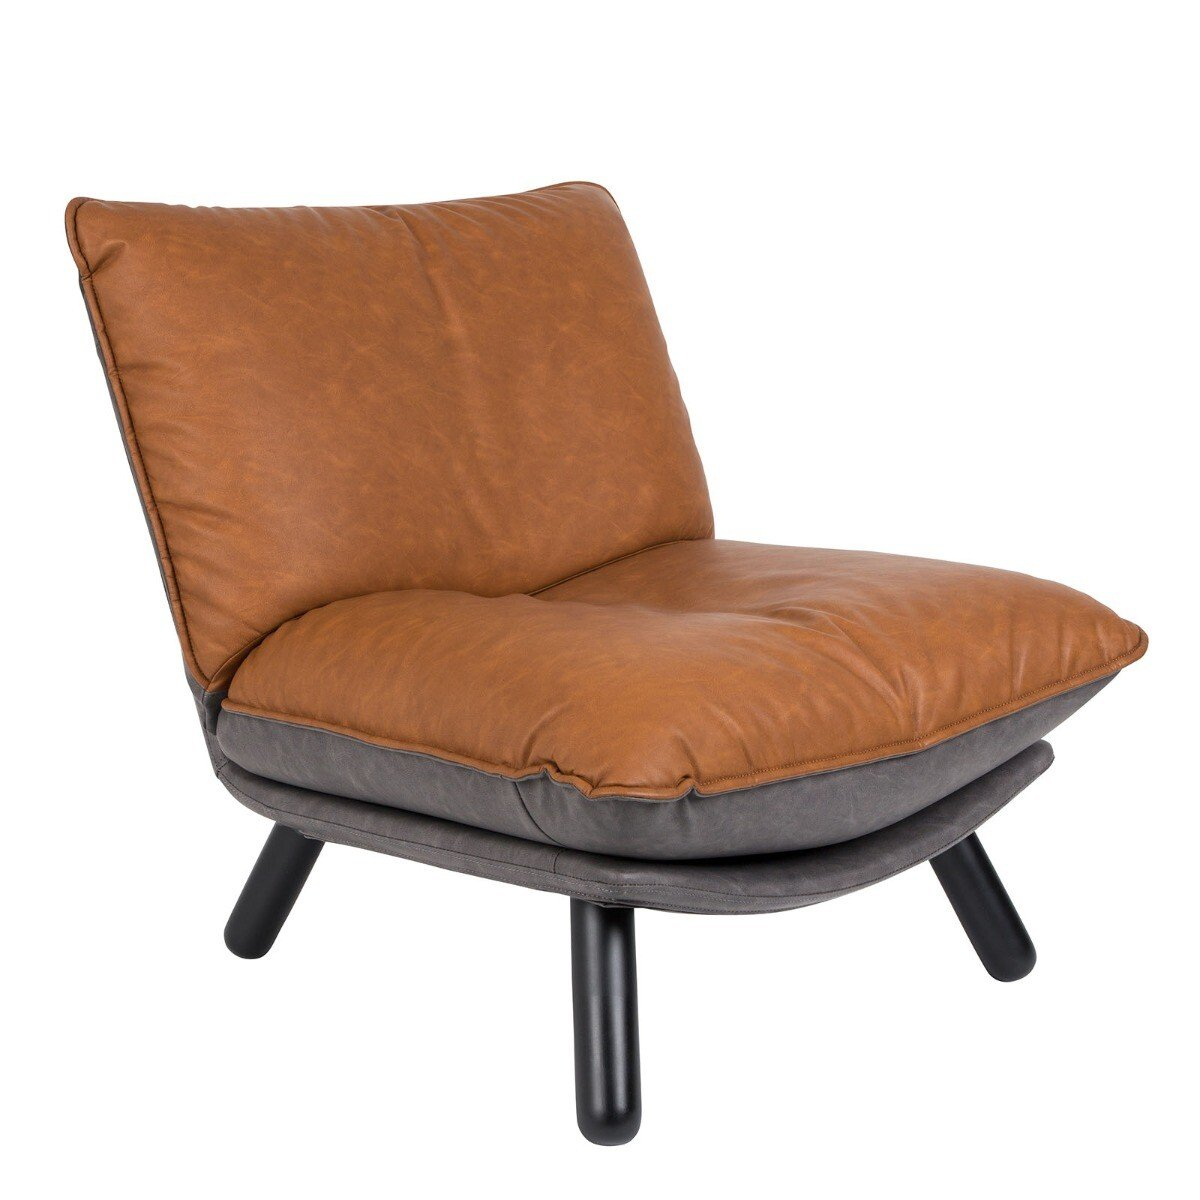 Zuiver Lounge Lazy Sack Fauteuil Bruin